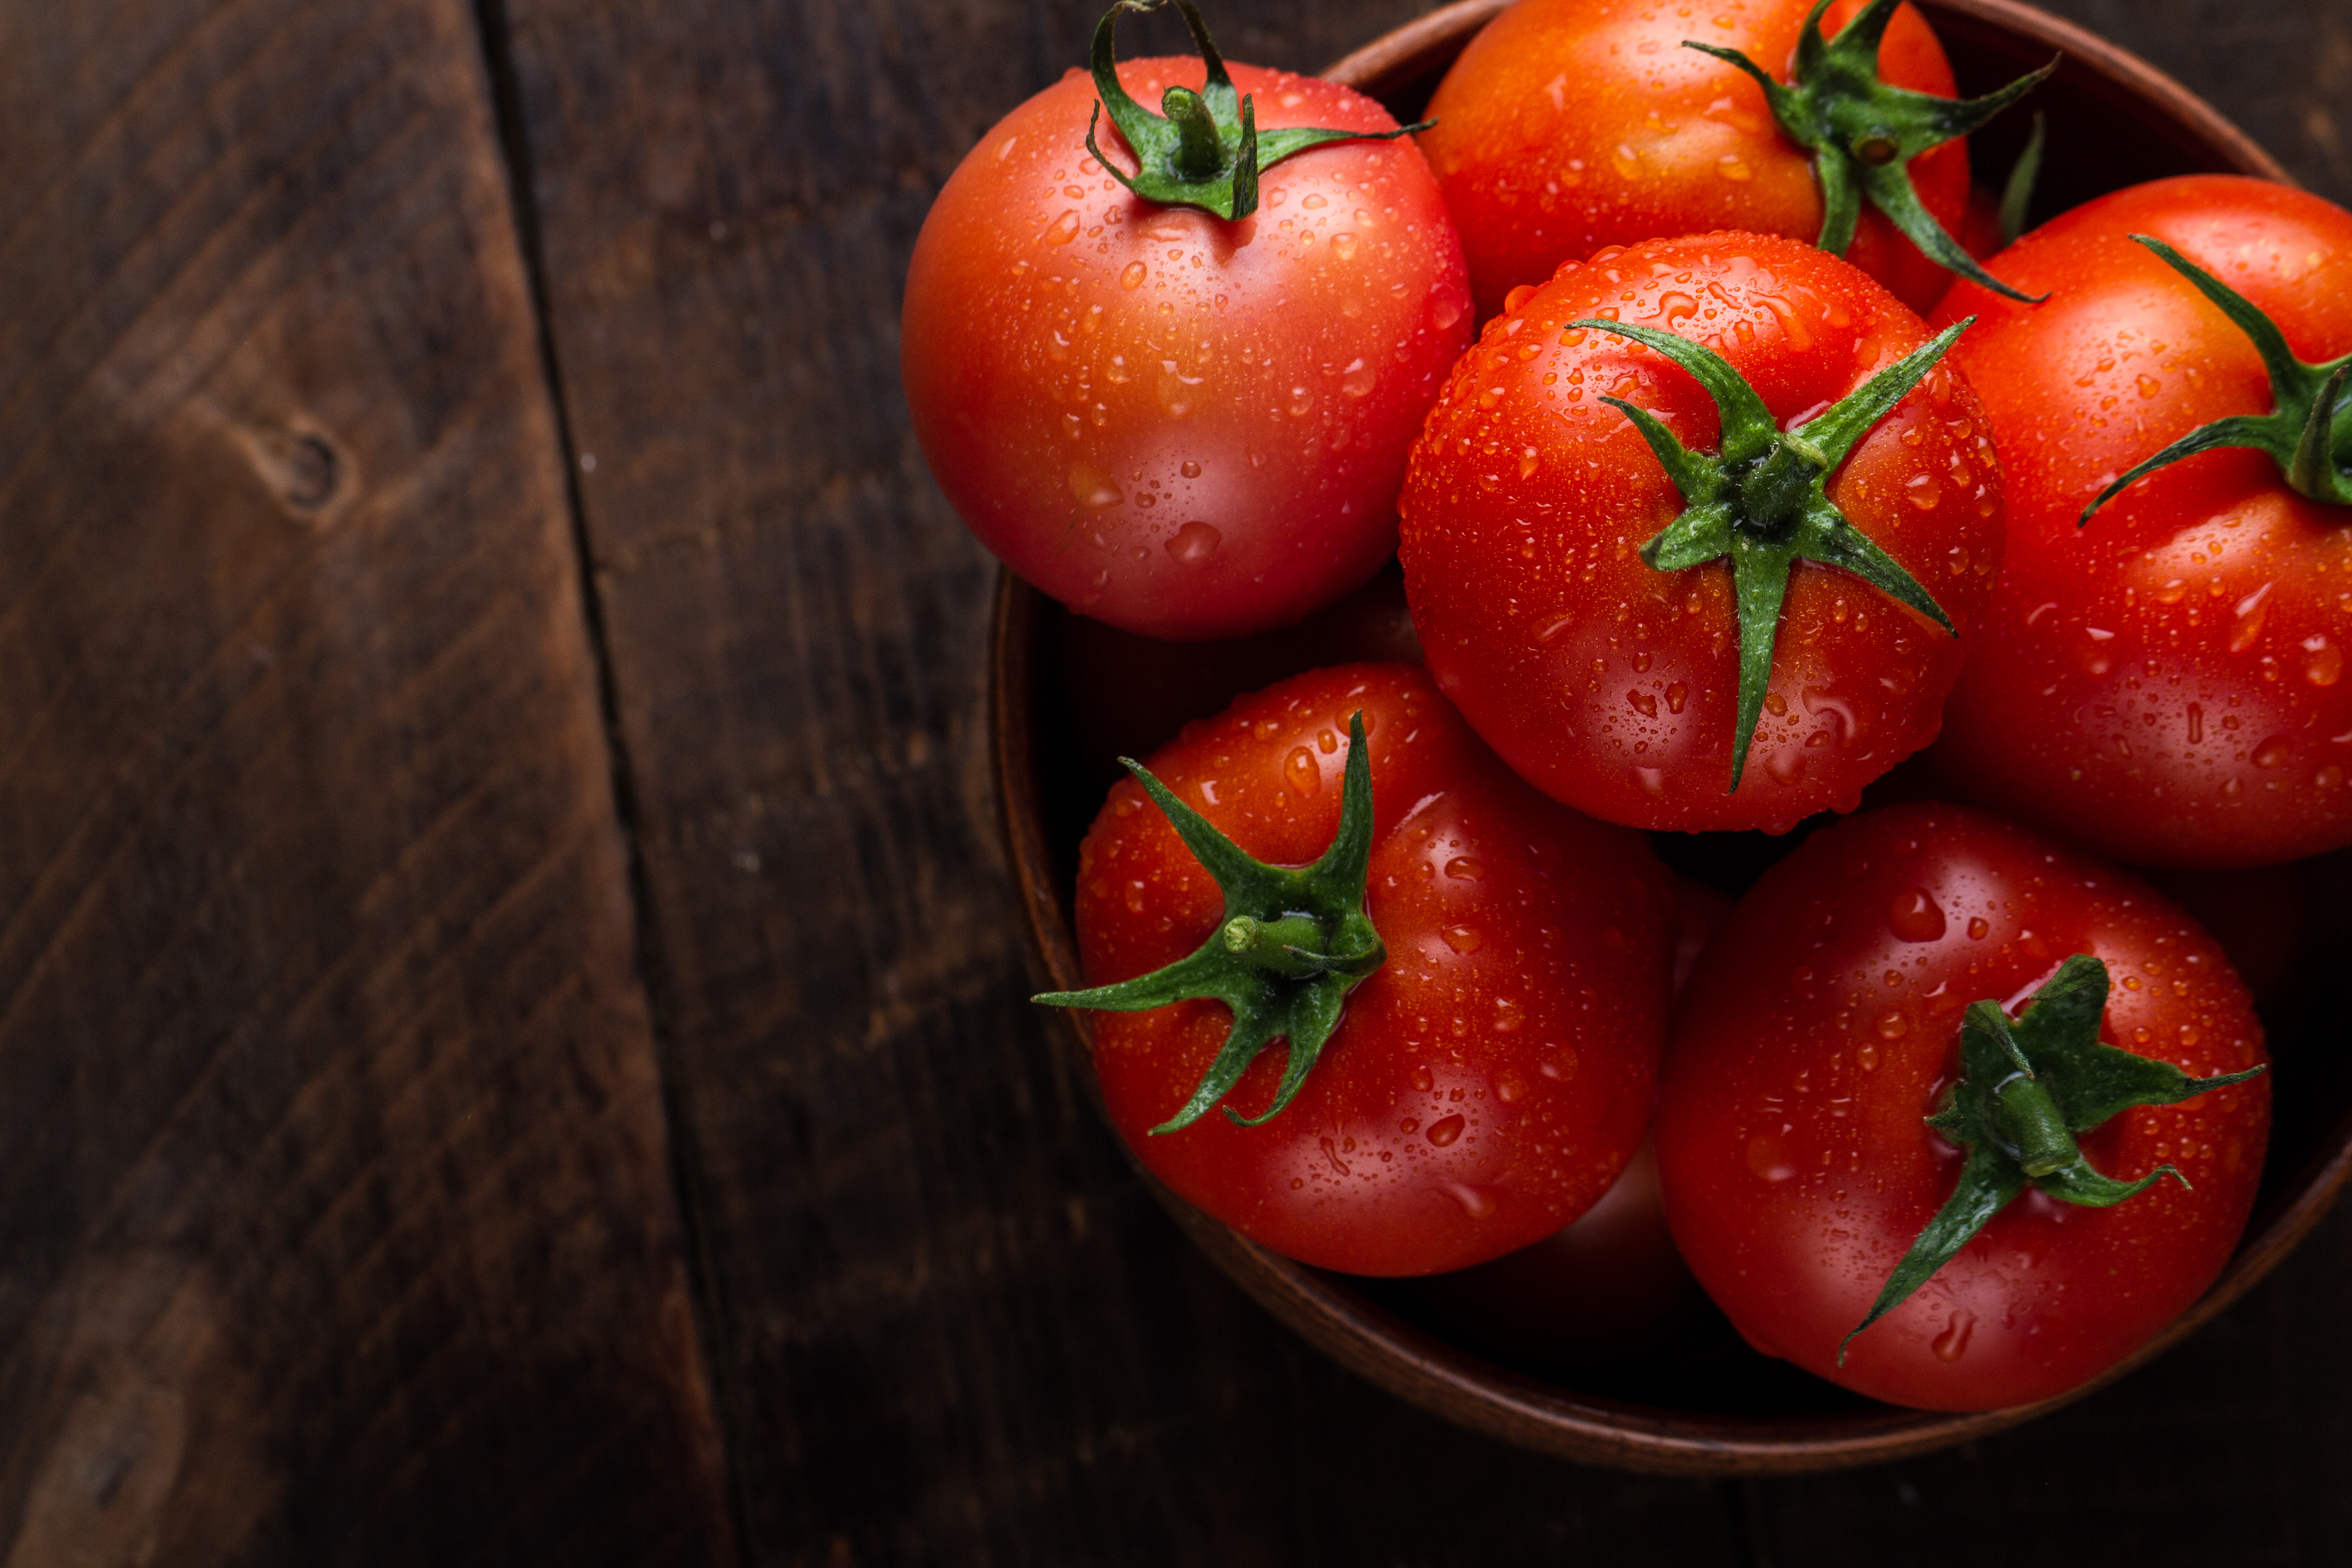 Step-by-Step Guide To Grow Tomatoes at Home According to the HEINZ Tomato Experts